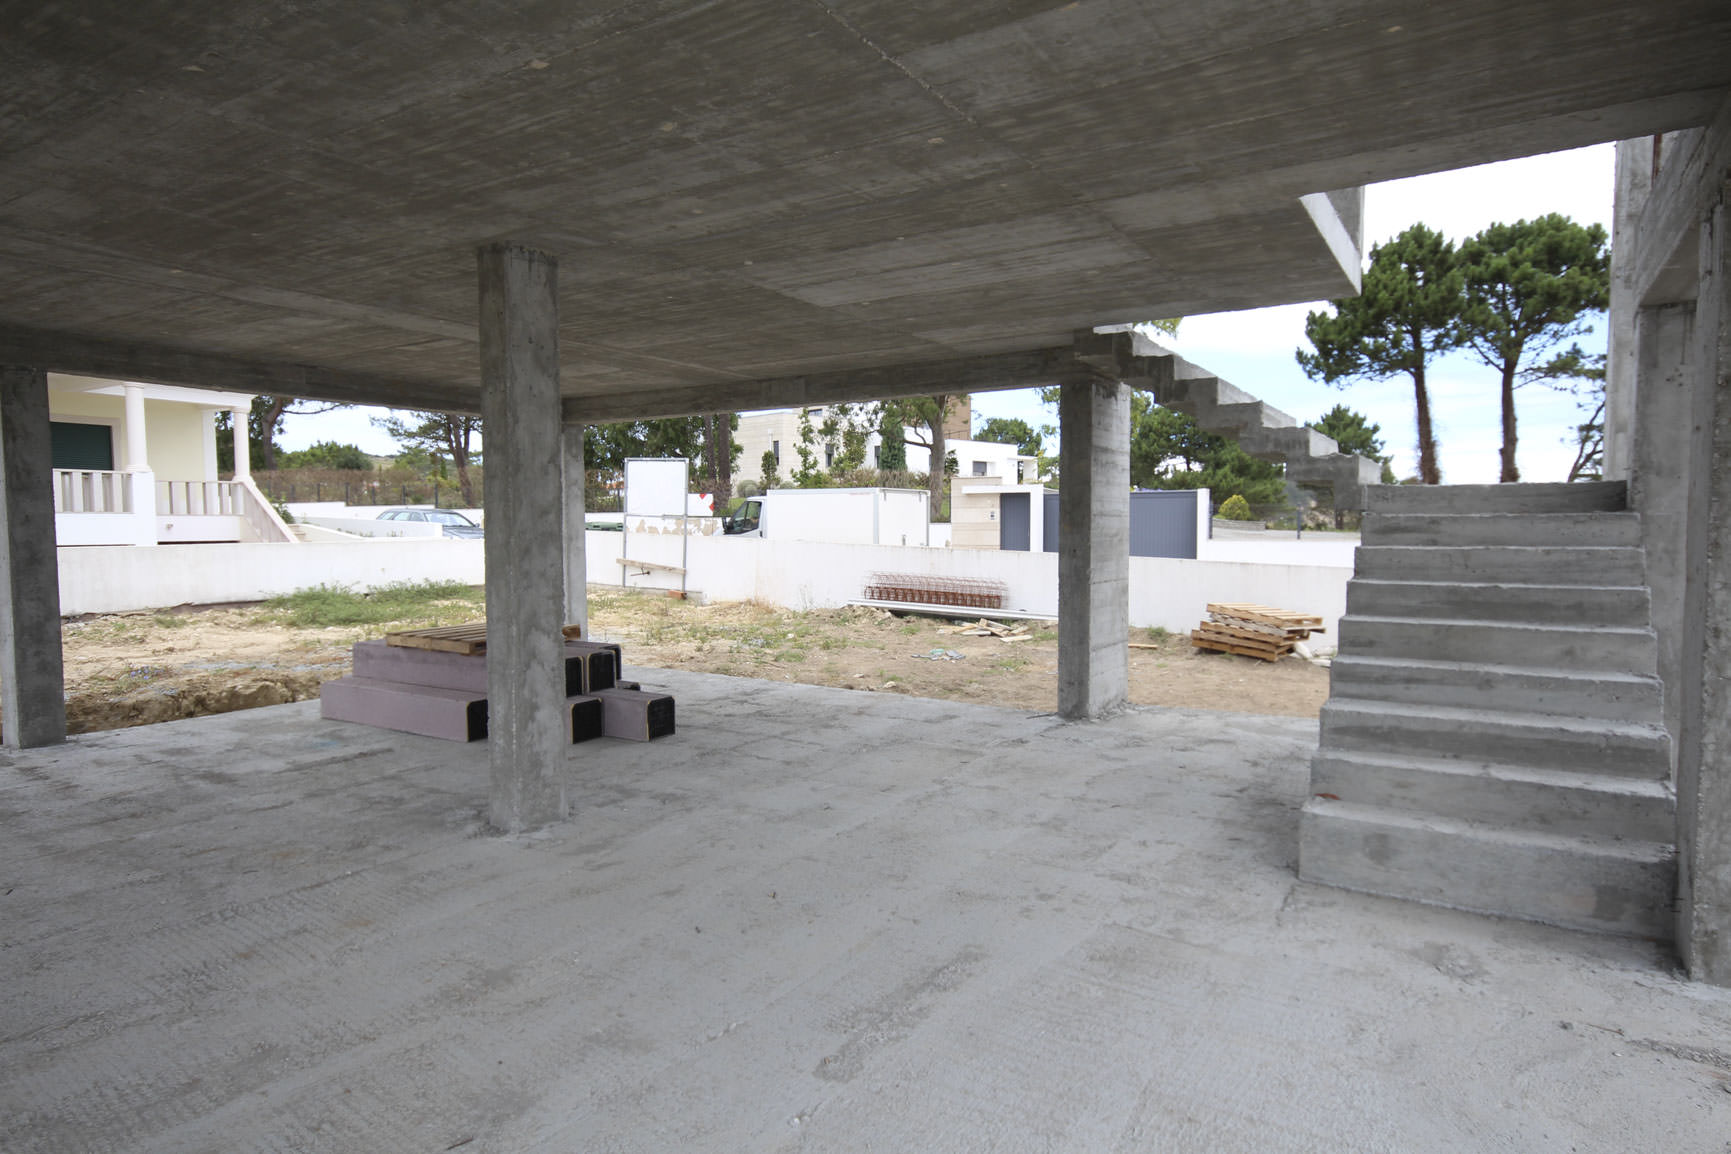 09-portugal-realty-silver-coast-property-for-sale-presprop-contsruction-new-build